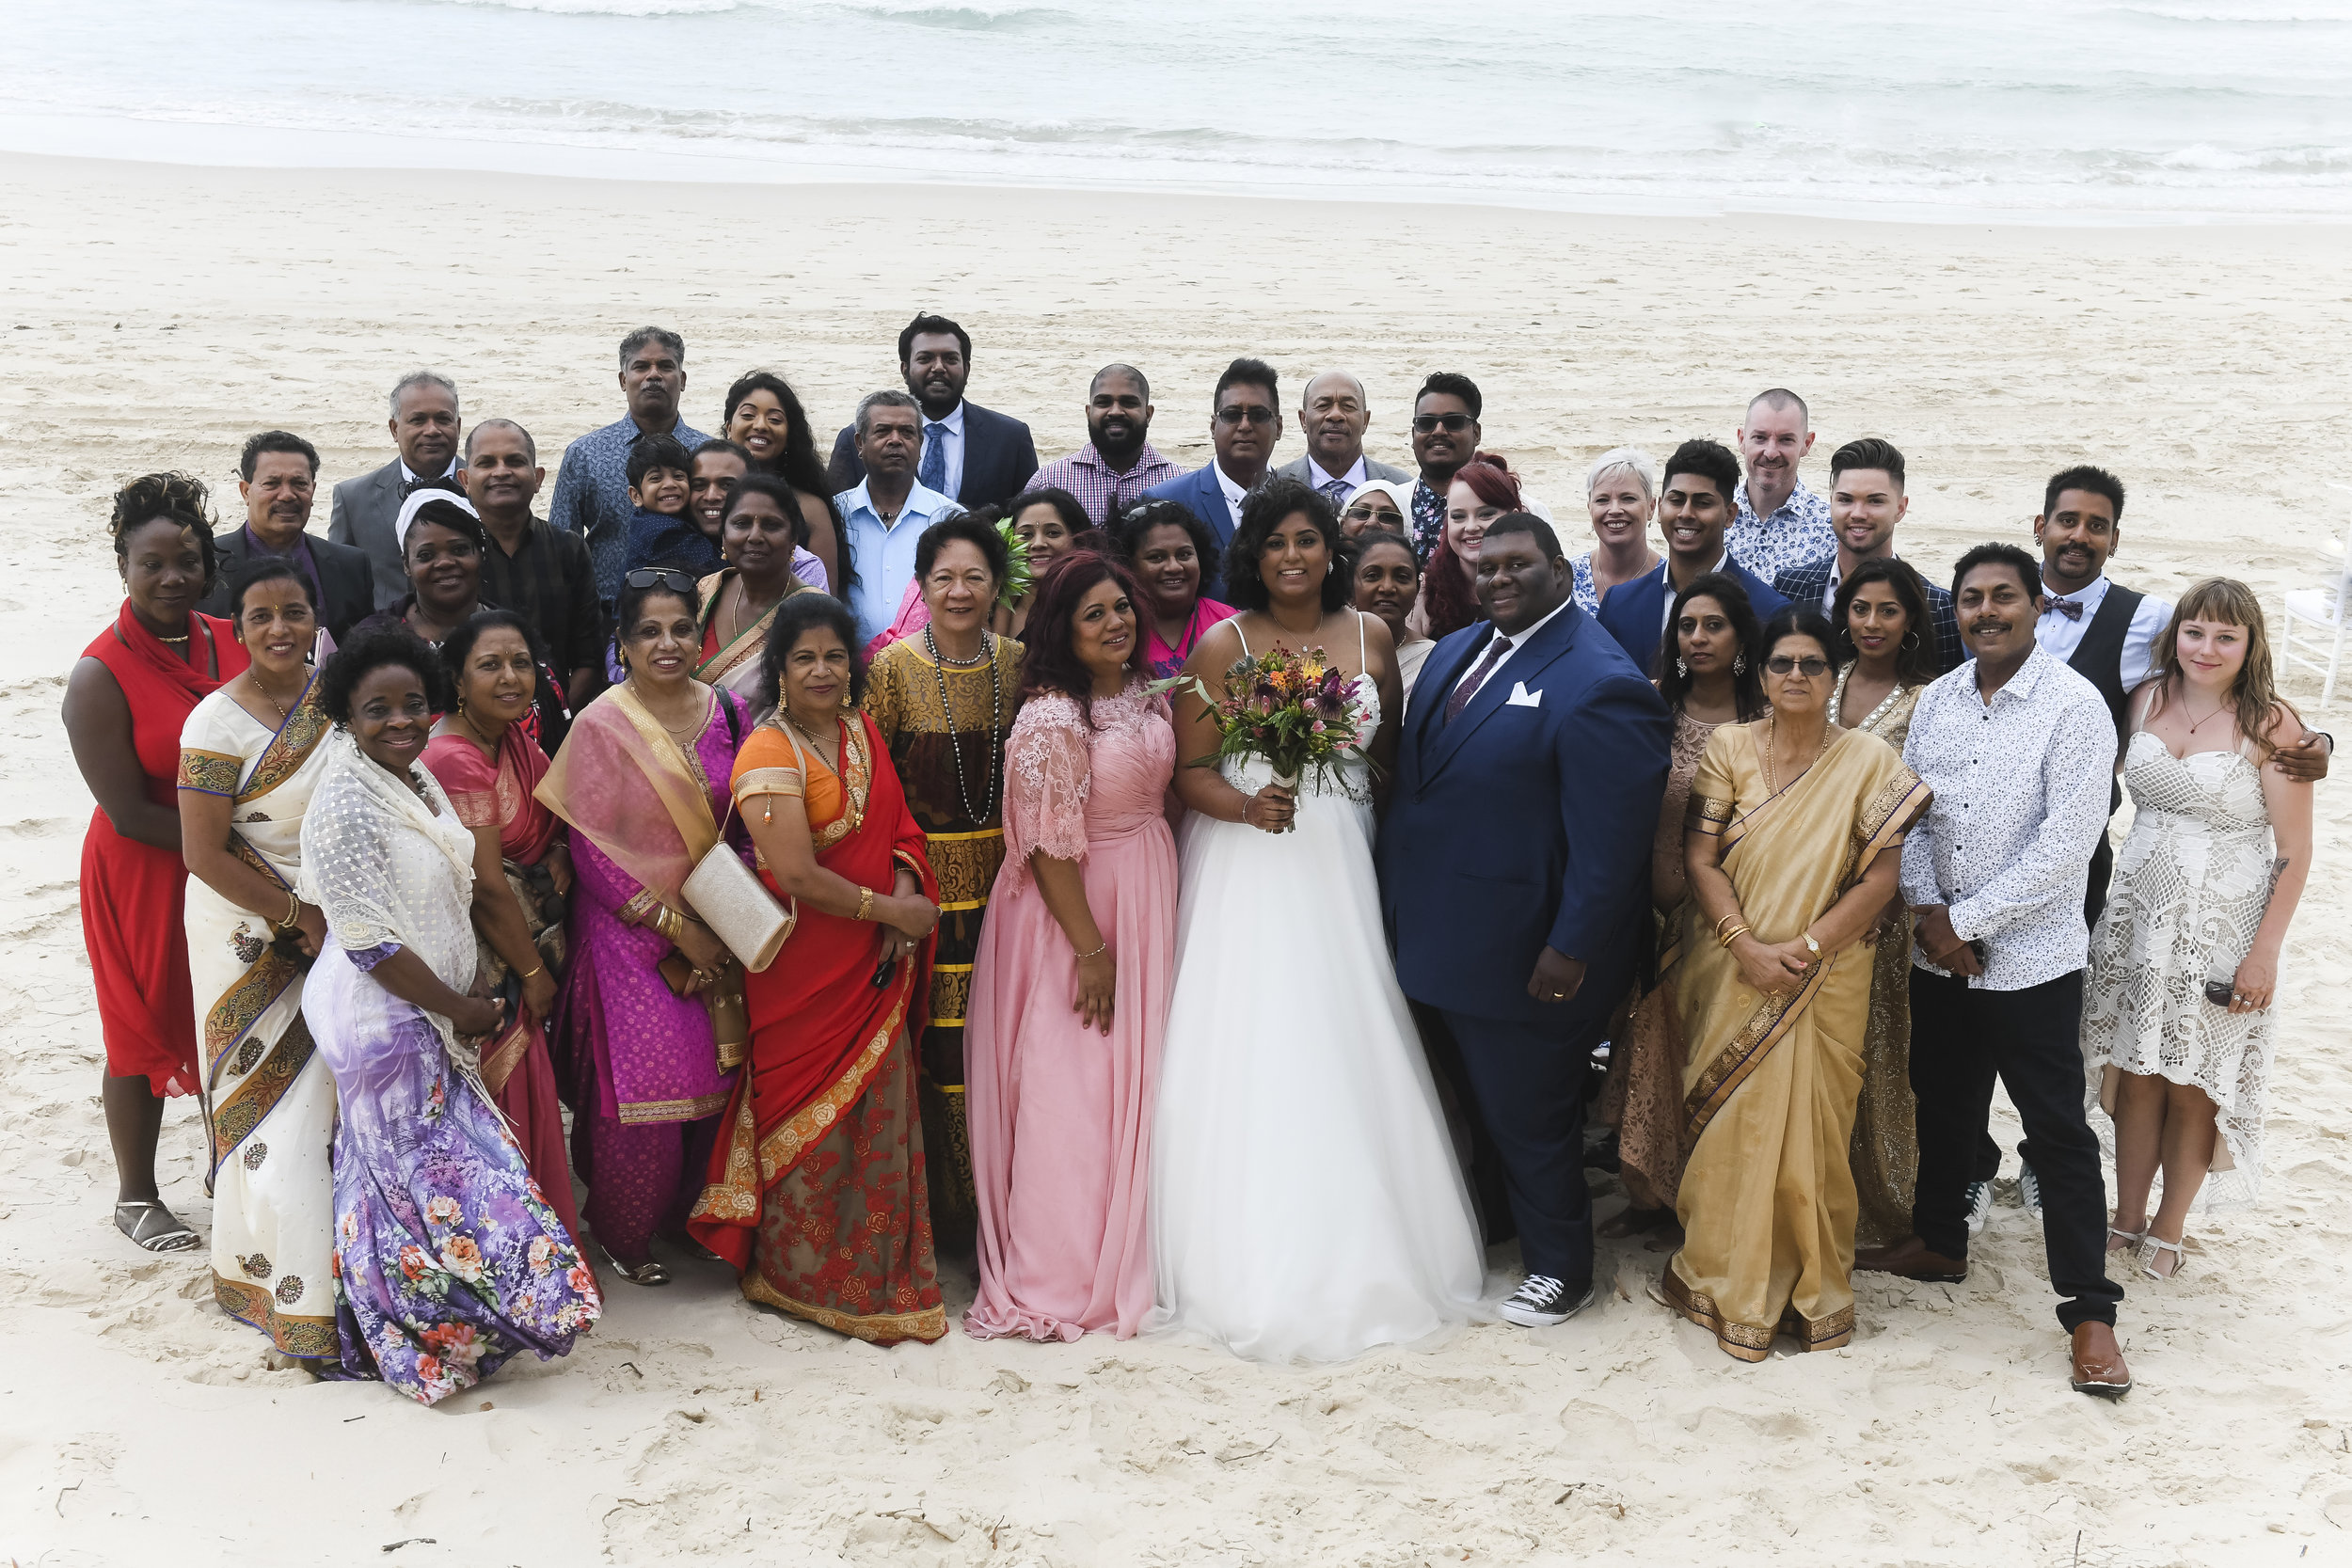 - Guests came from Fiji, Canada, New Zealand and northern Queensland to celebrate in such a special day.